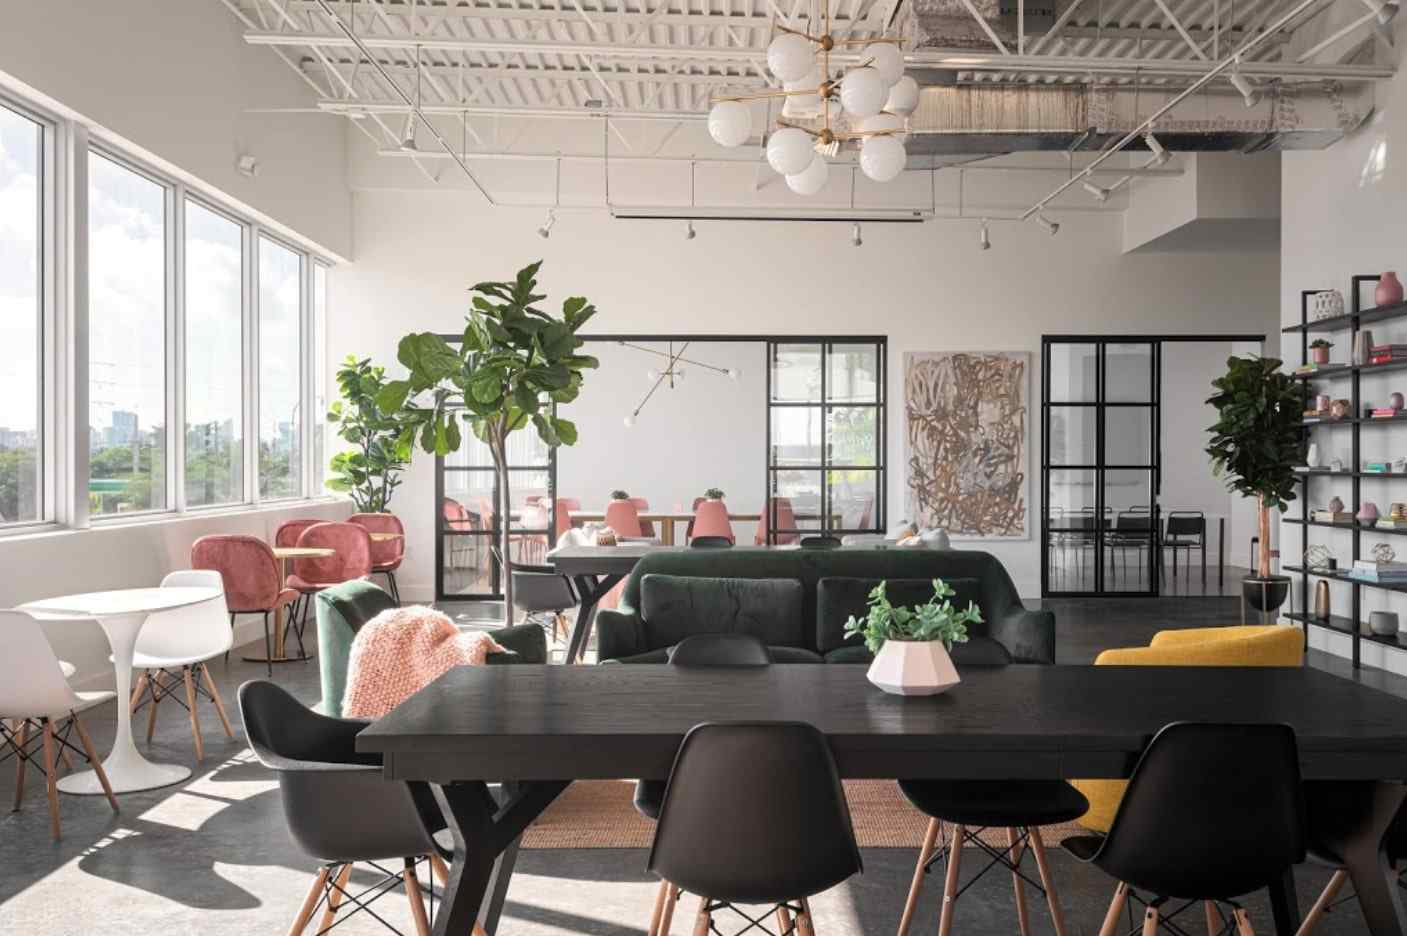 open coworking space with back conference room with sliding glass door room divider